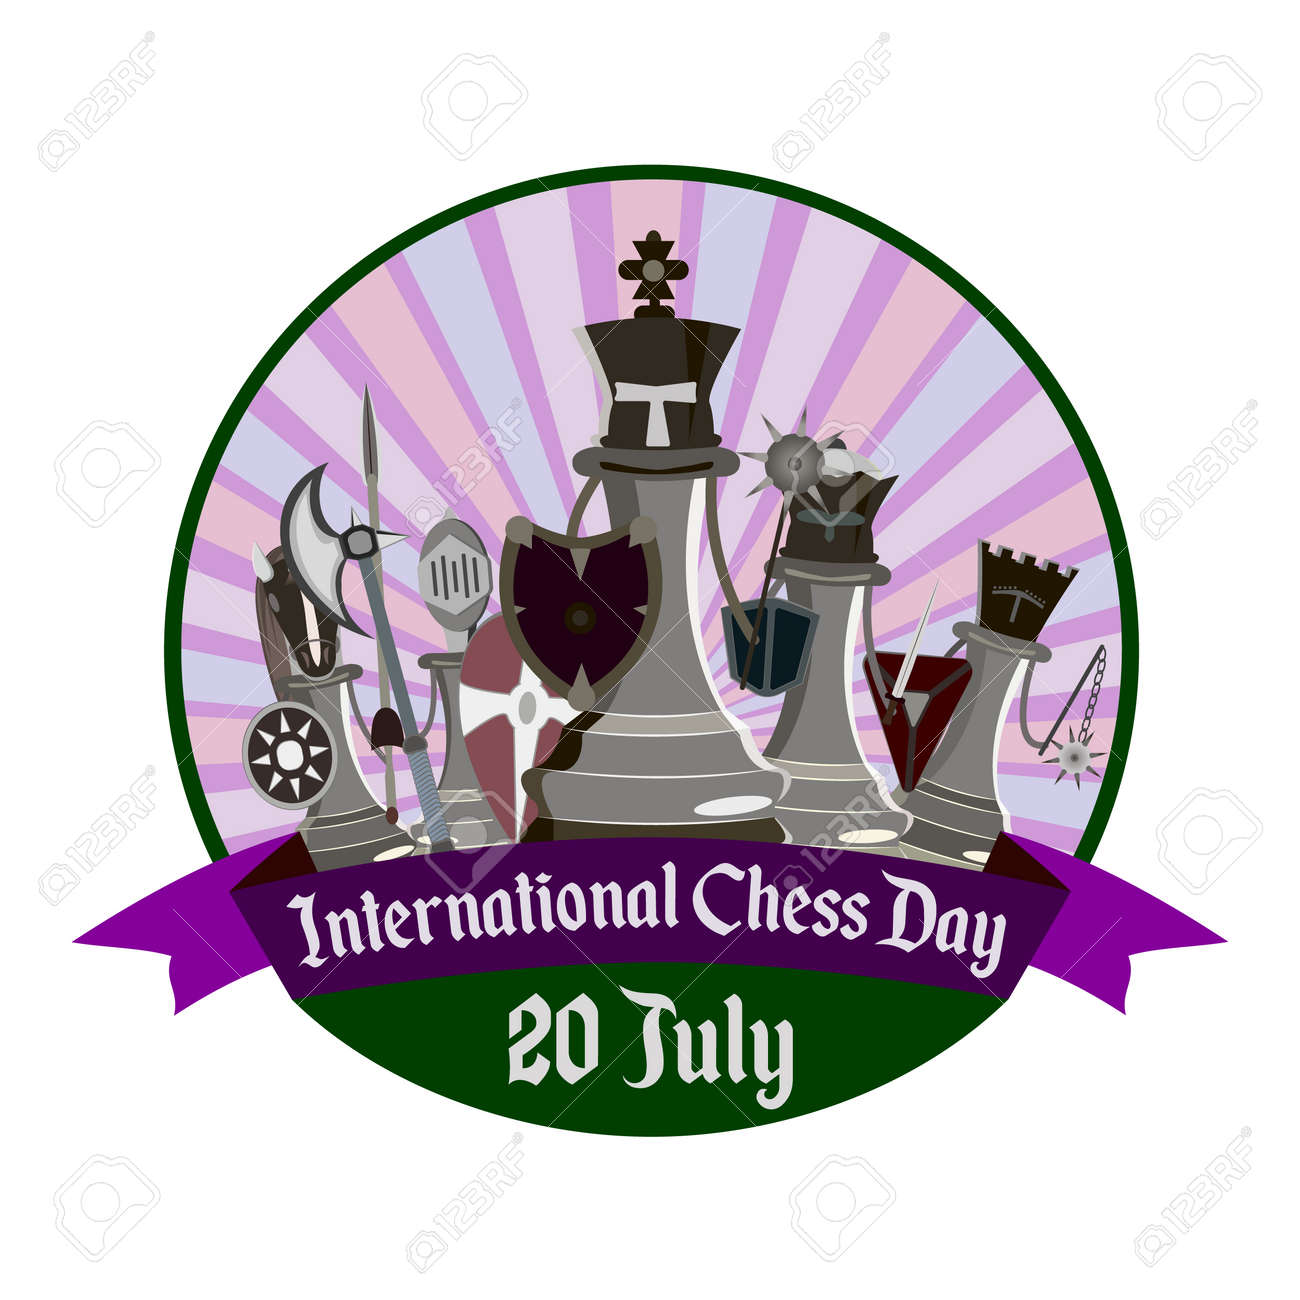 International Chess Day, vector illustration with stylized knight chess - 103984259